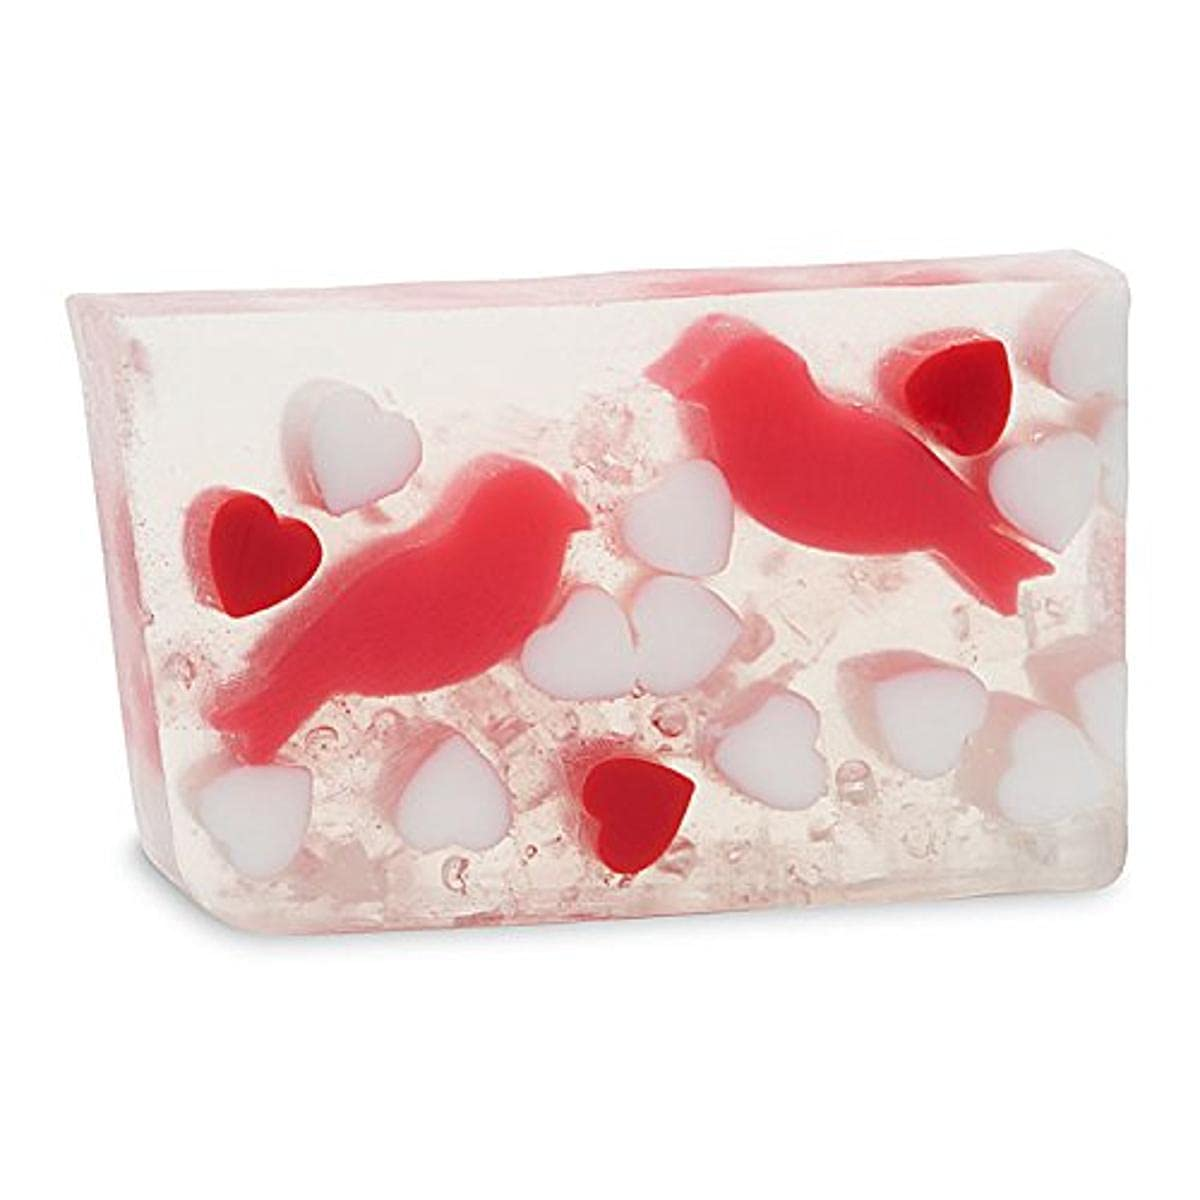 Primal Elements Sacramento Mall Loaf Soap 5.5 Pound Love Birds Special Campaign